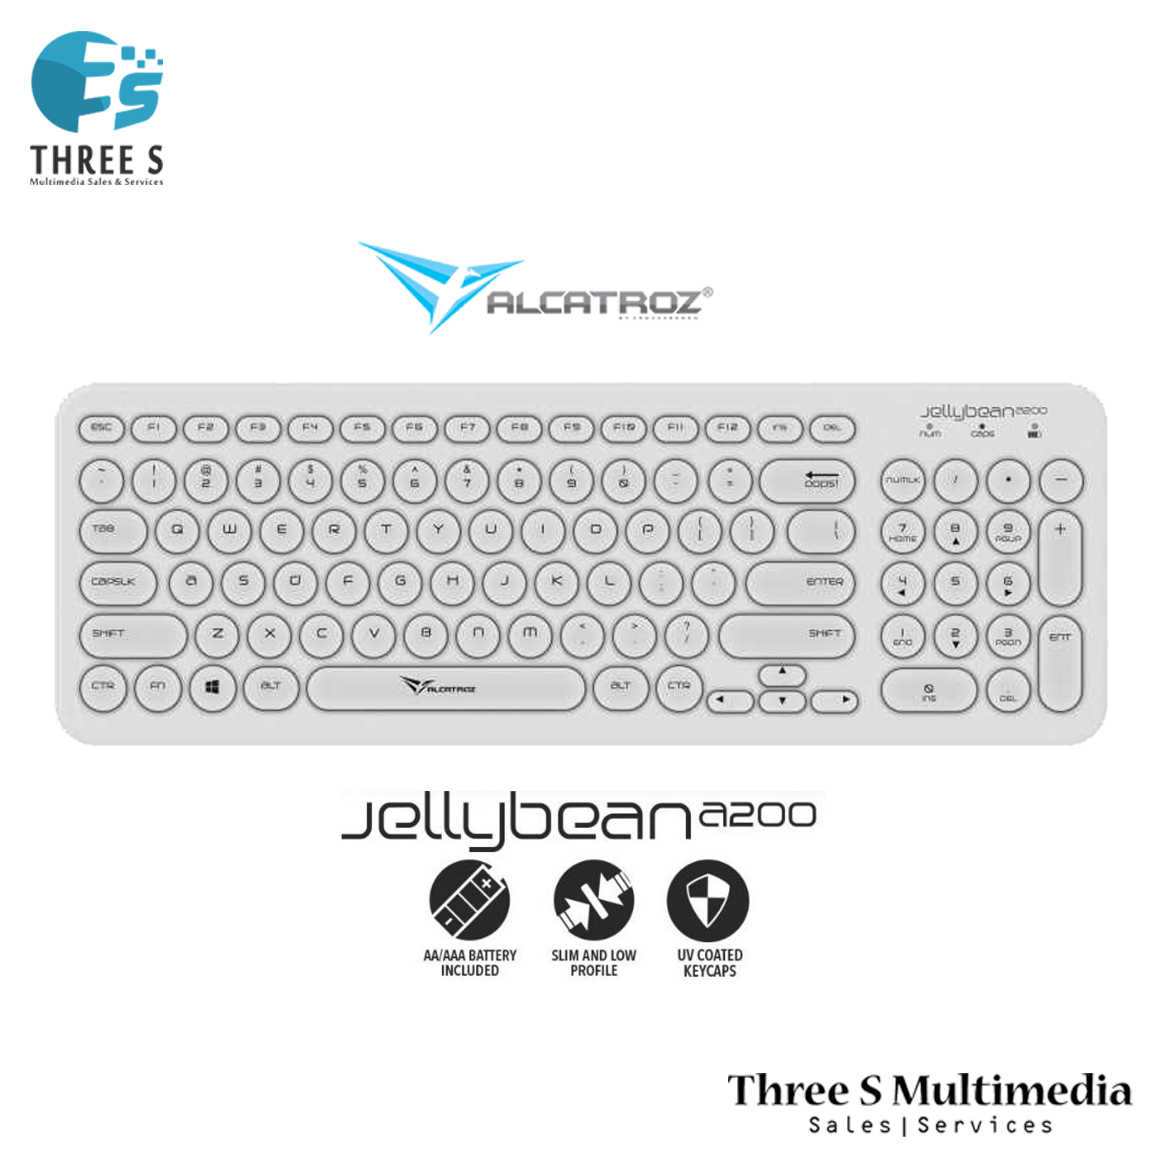 Alcatroz Jelly Bean A200 Wireless Keyboard FREE SonicGear Blue Cube Combo